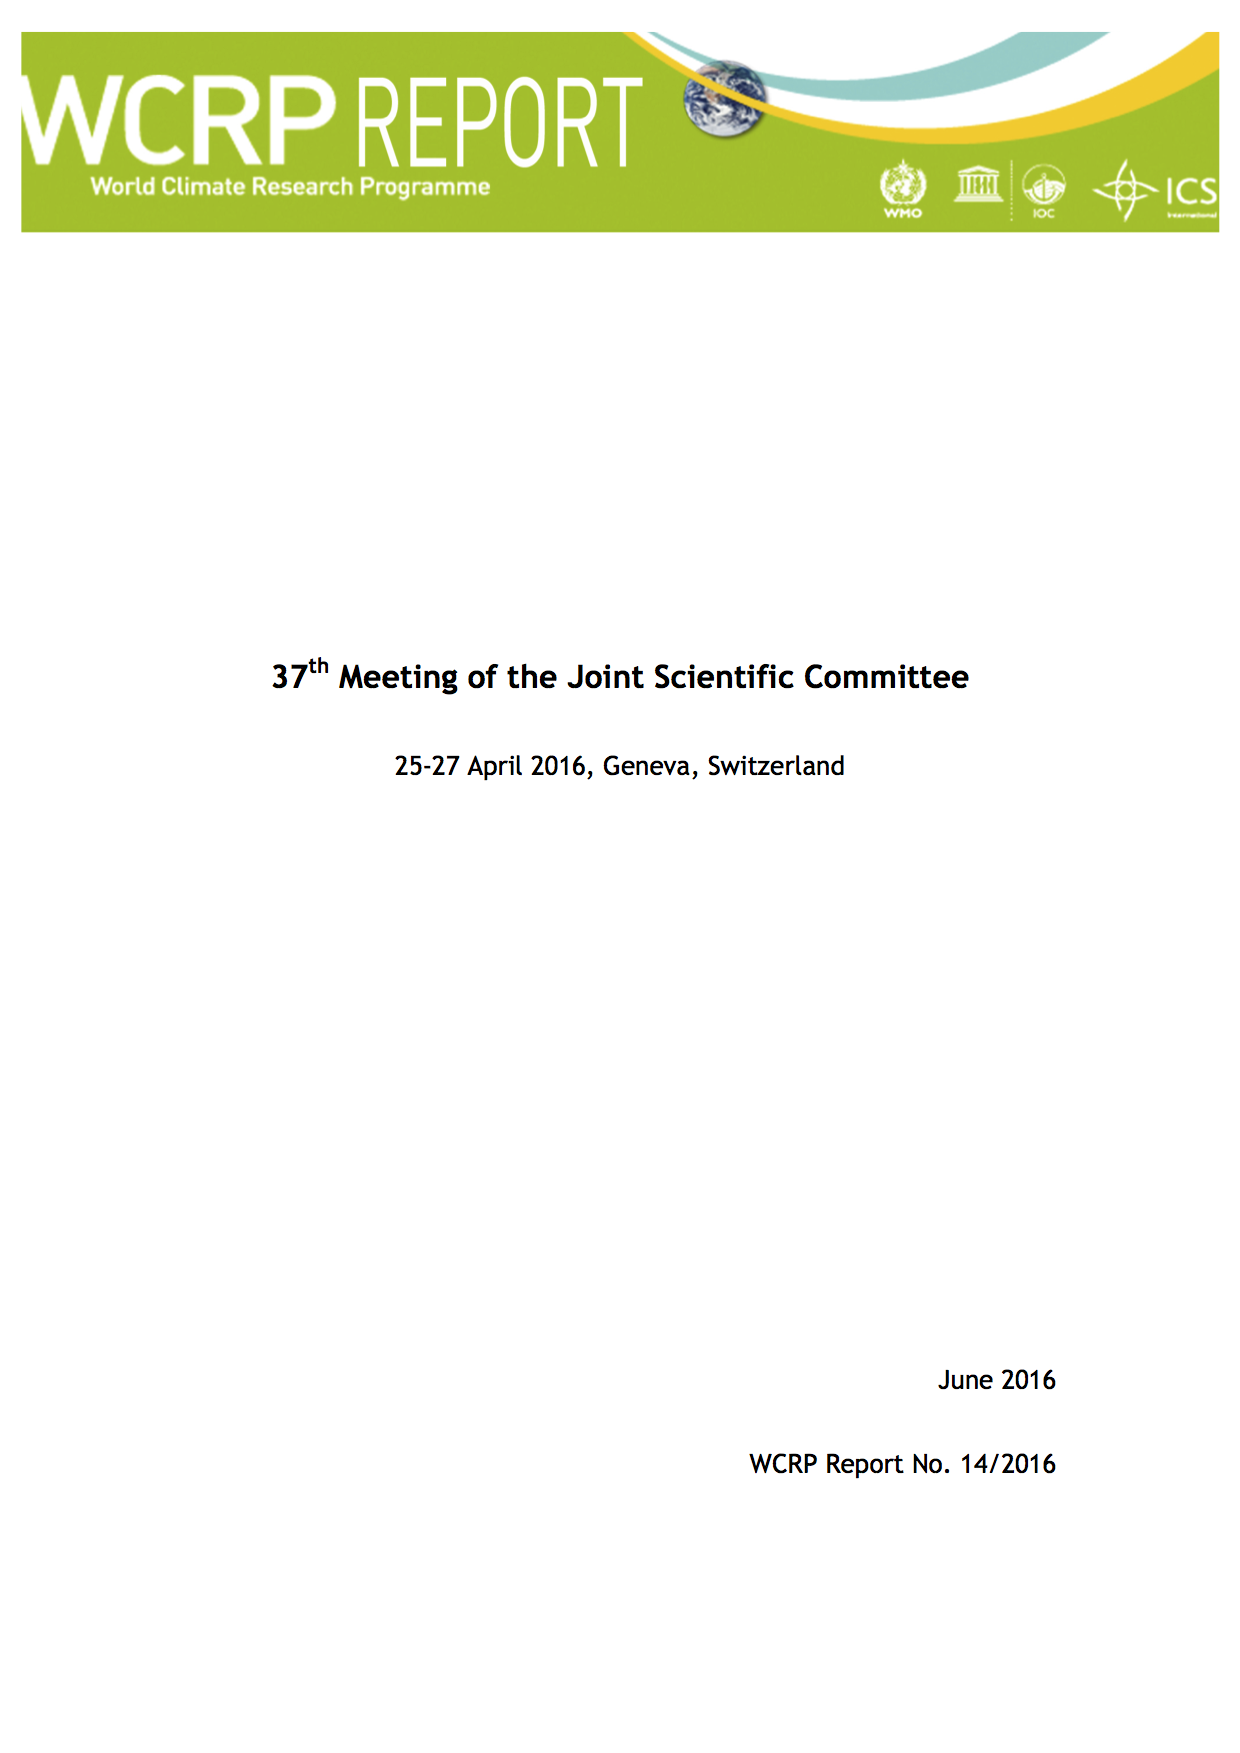 37th Session of the Joint Scientific Committee